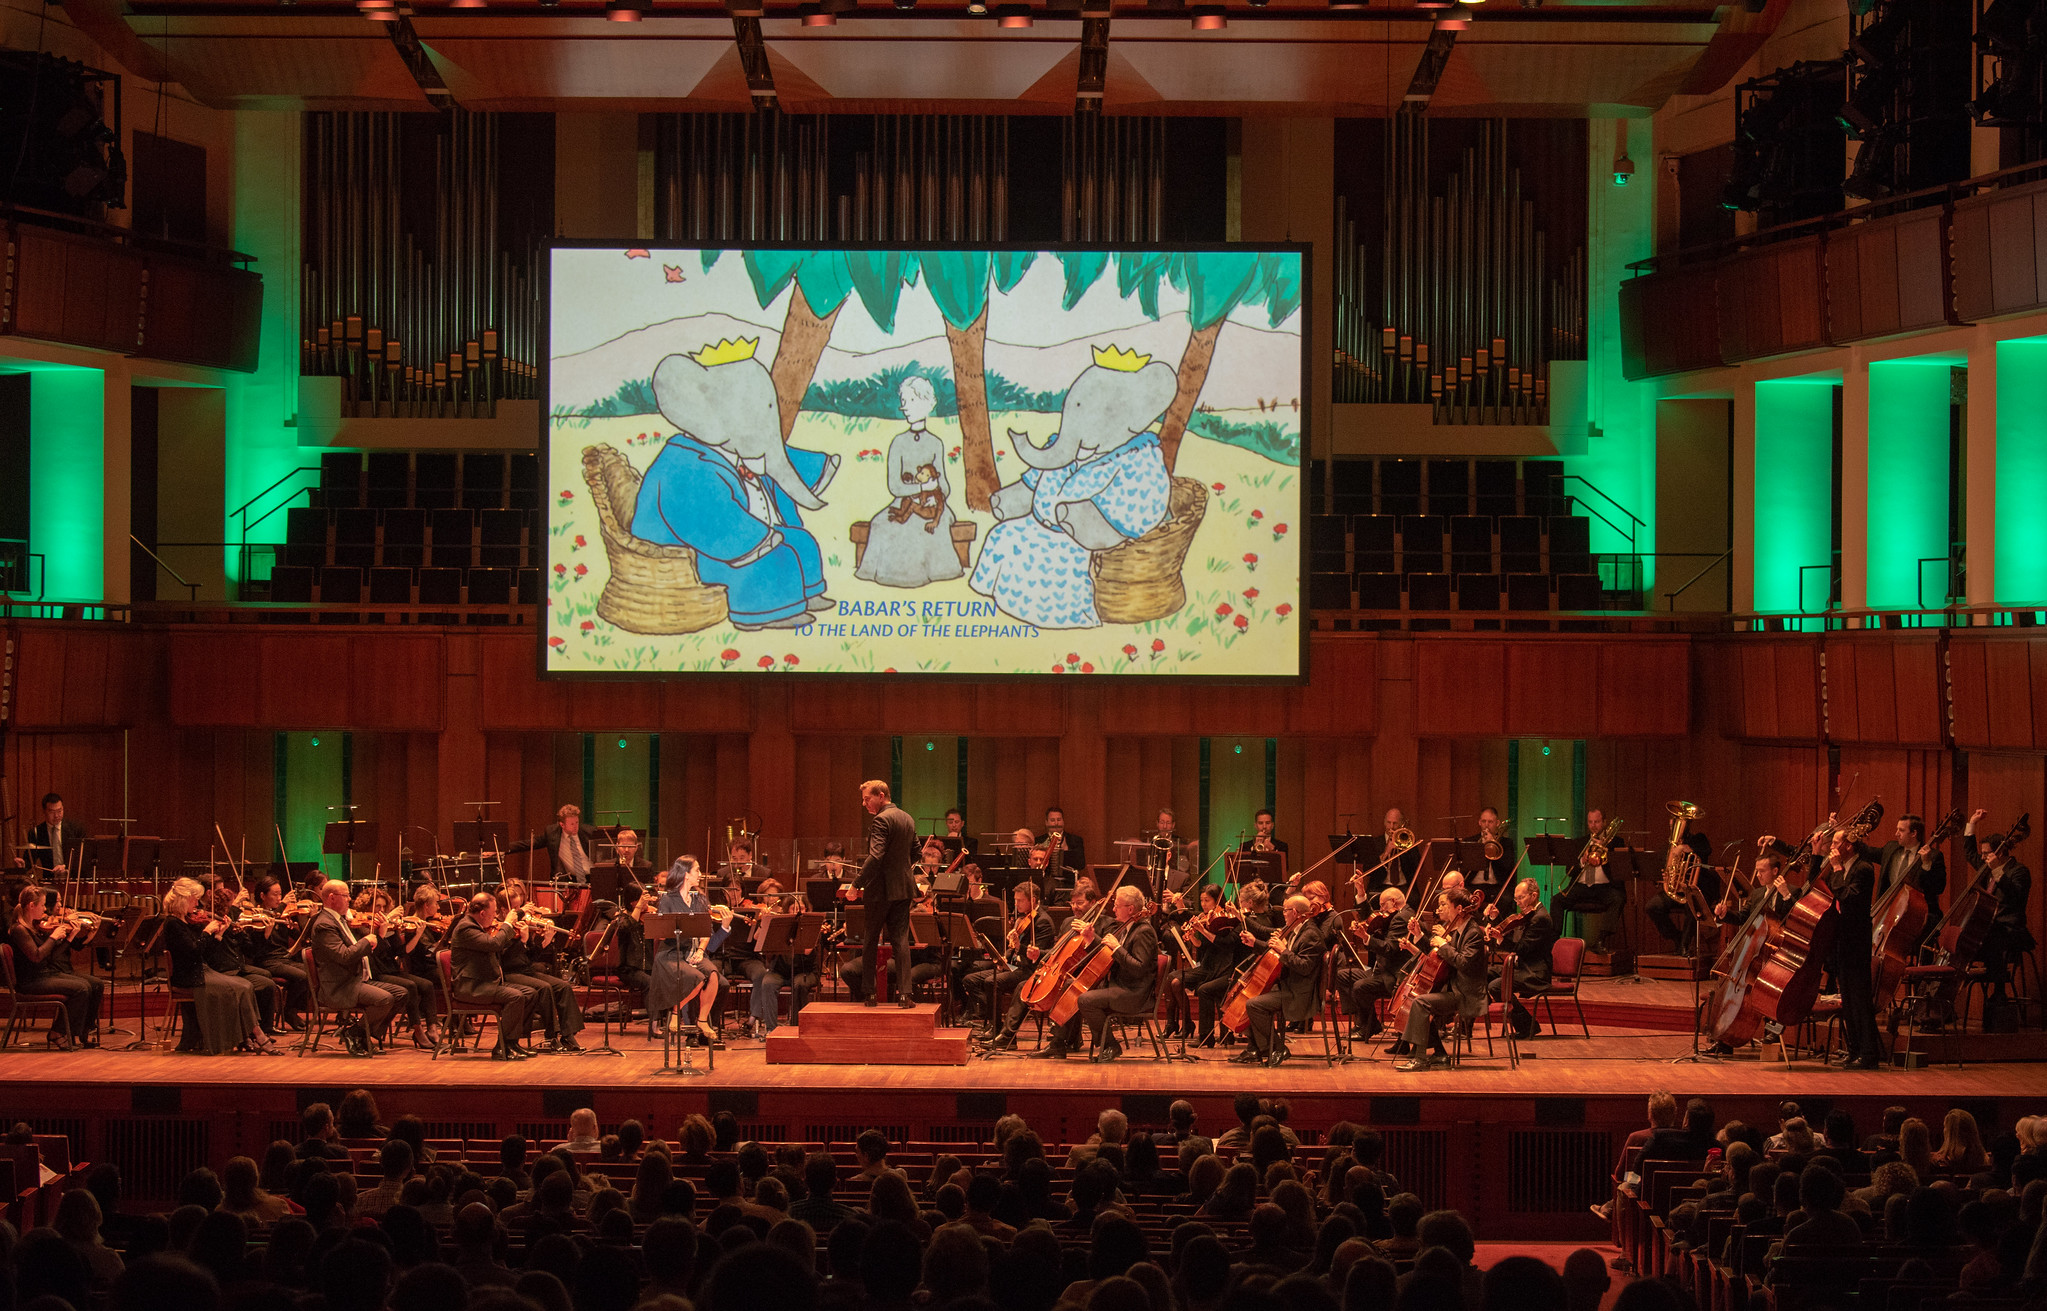 First U.S. performance,   Babar's Return to the Land of the Elephants   National Symphony Orchestra, Steven Reineke, conductor, Regina Aquino, narrator, John F Kennedy Center for the Arts, Washington, D.C., April 7, 2019  Photo: Erica Bruce (full size photo available). Multimedia image: original Jean de Brunhoff watercolor, Kendra & Allan Daniel Collection. Used with permissions